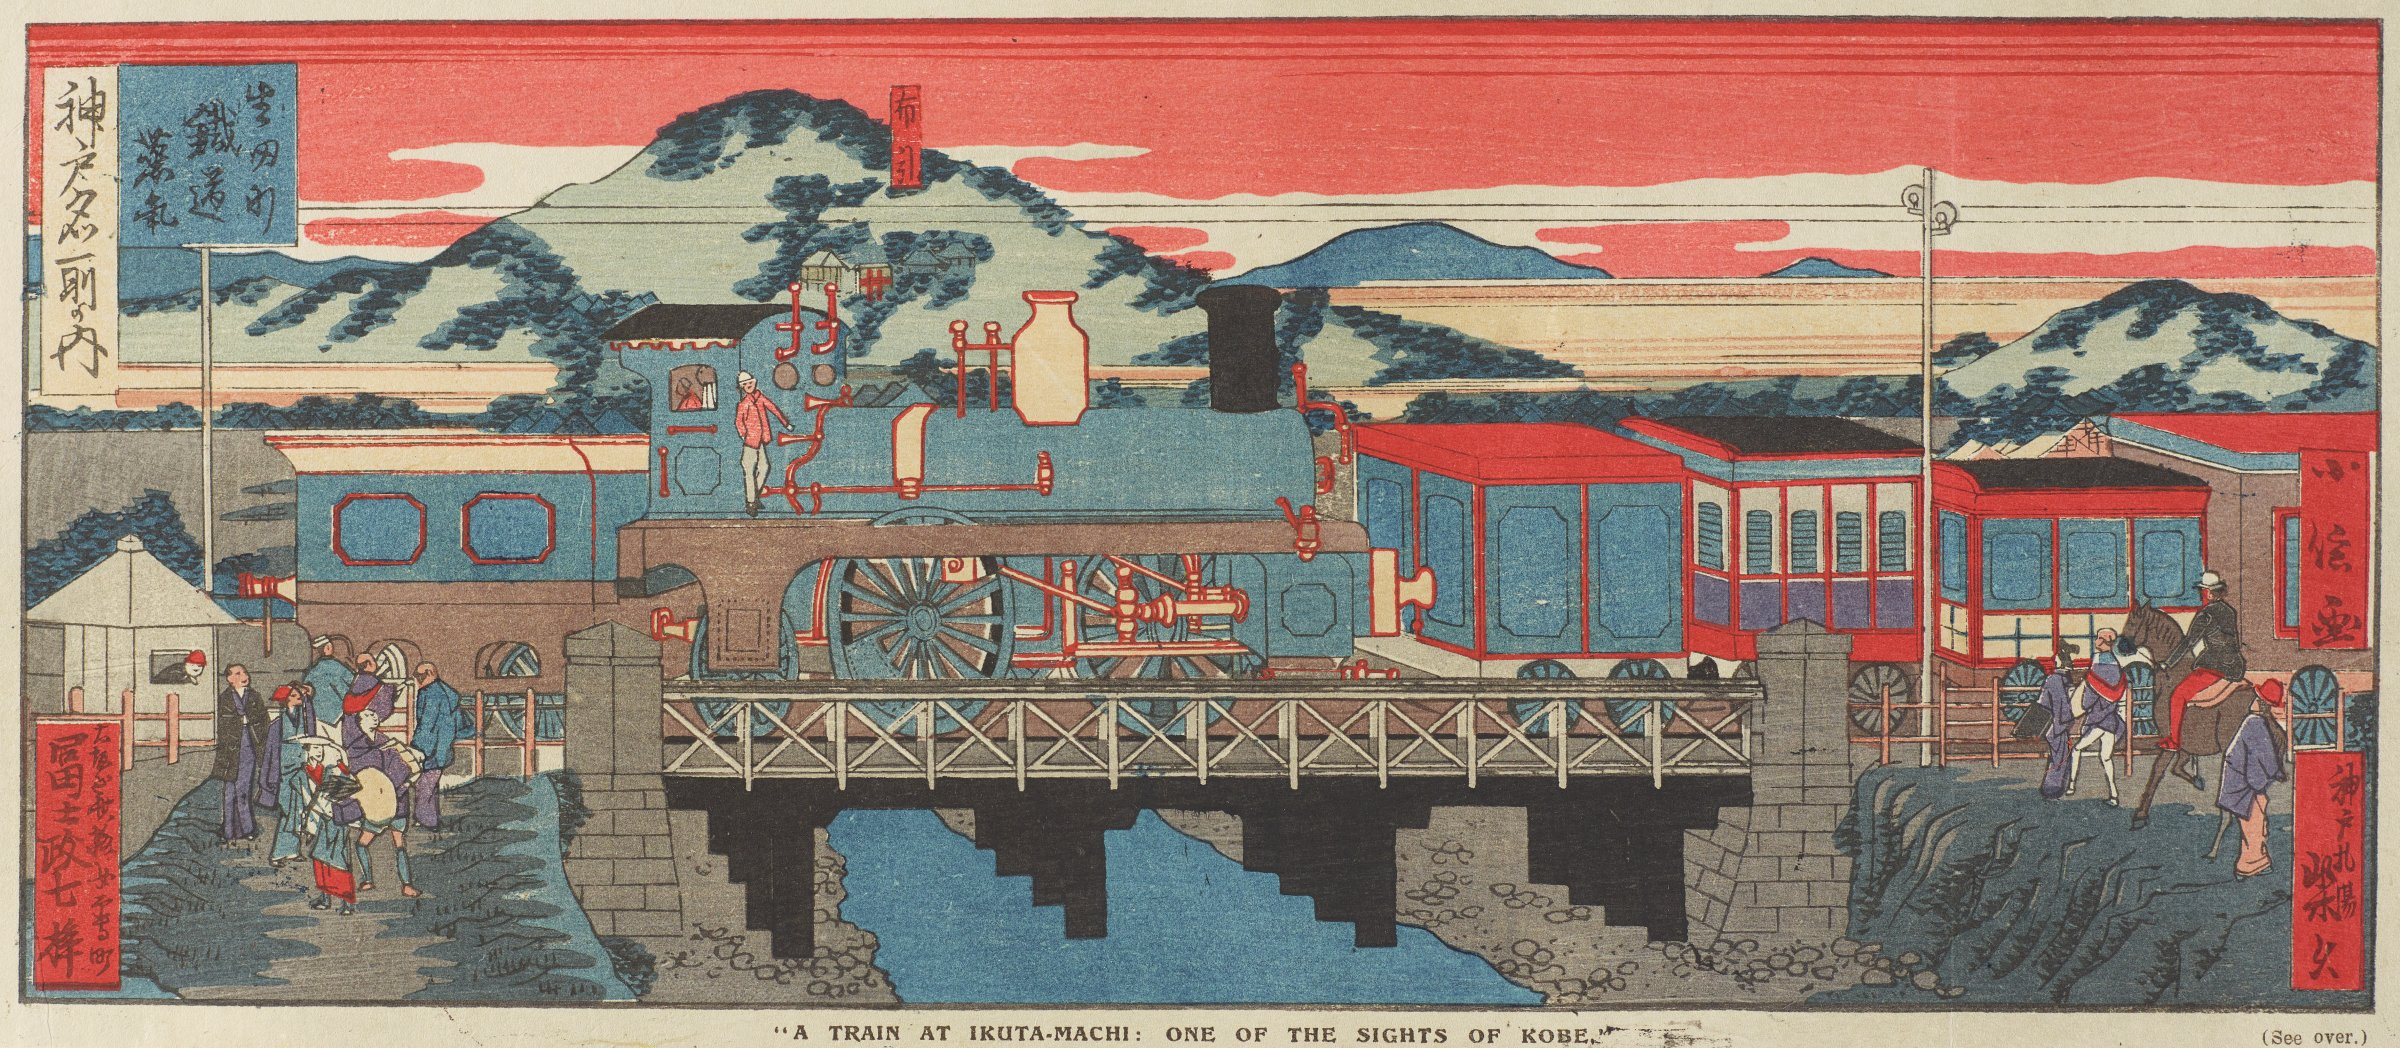 A Train at Ikuta-Machi: One of the Sights of Kōbe, from the series Printing Album of Westernization of Kōbe, Utagawa Konobu I, ink and color on paper